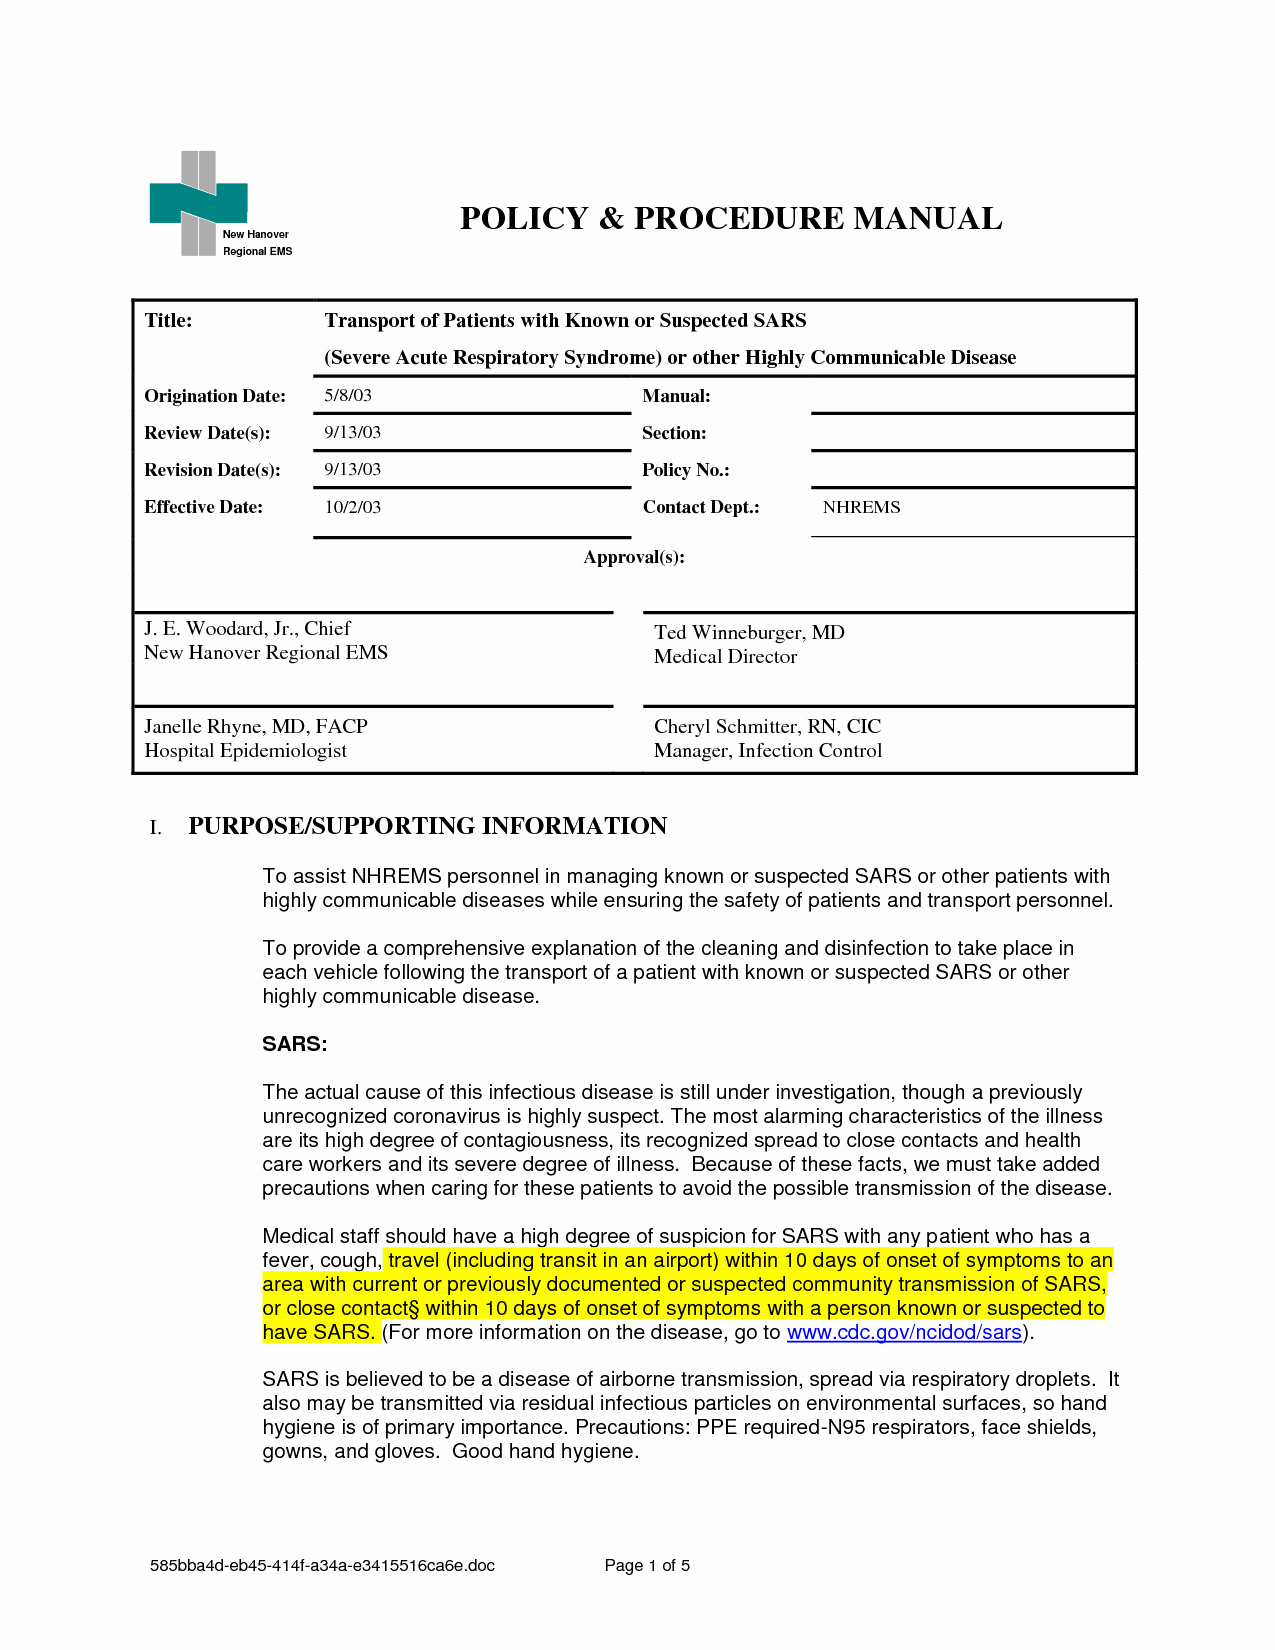 Policy and Procedure Template Beautiful Policies and Procedures Template